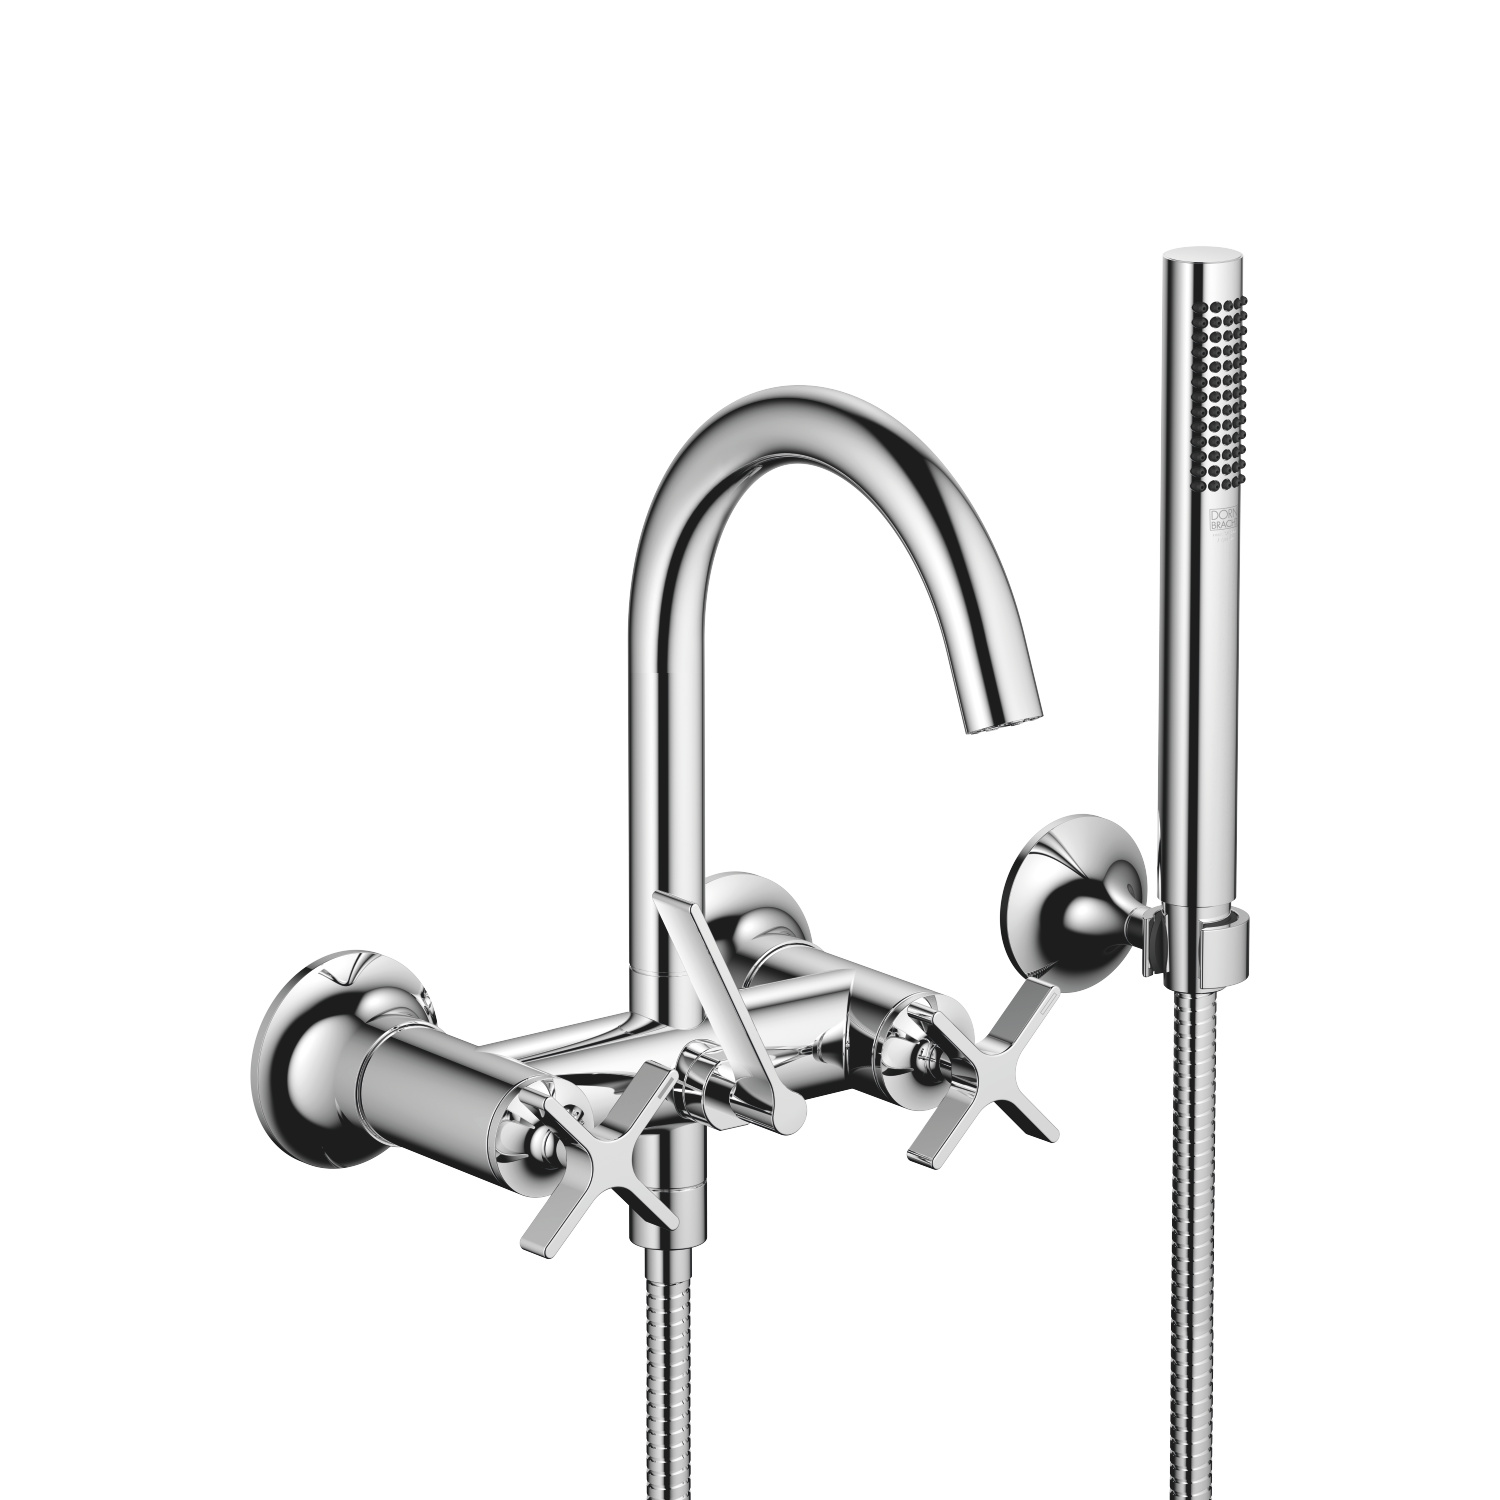 Bath mixer for wall mounting with hand shower set - polished chrome